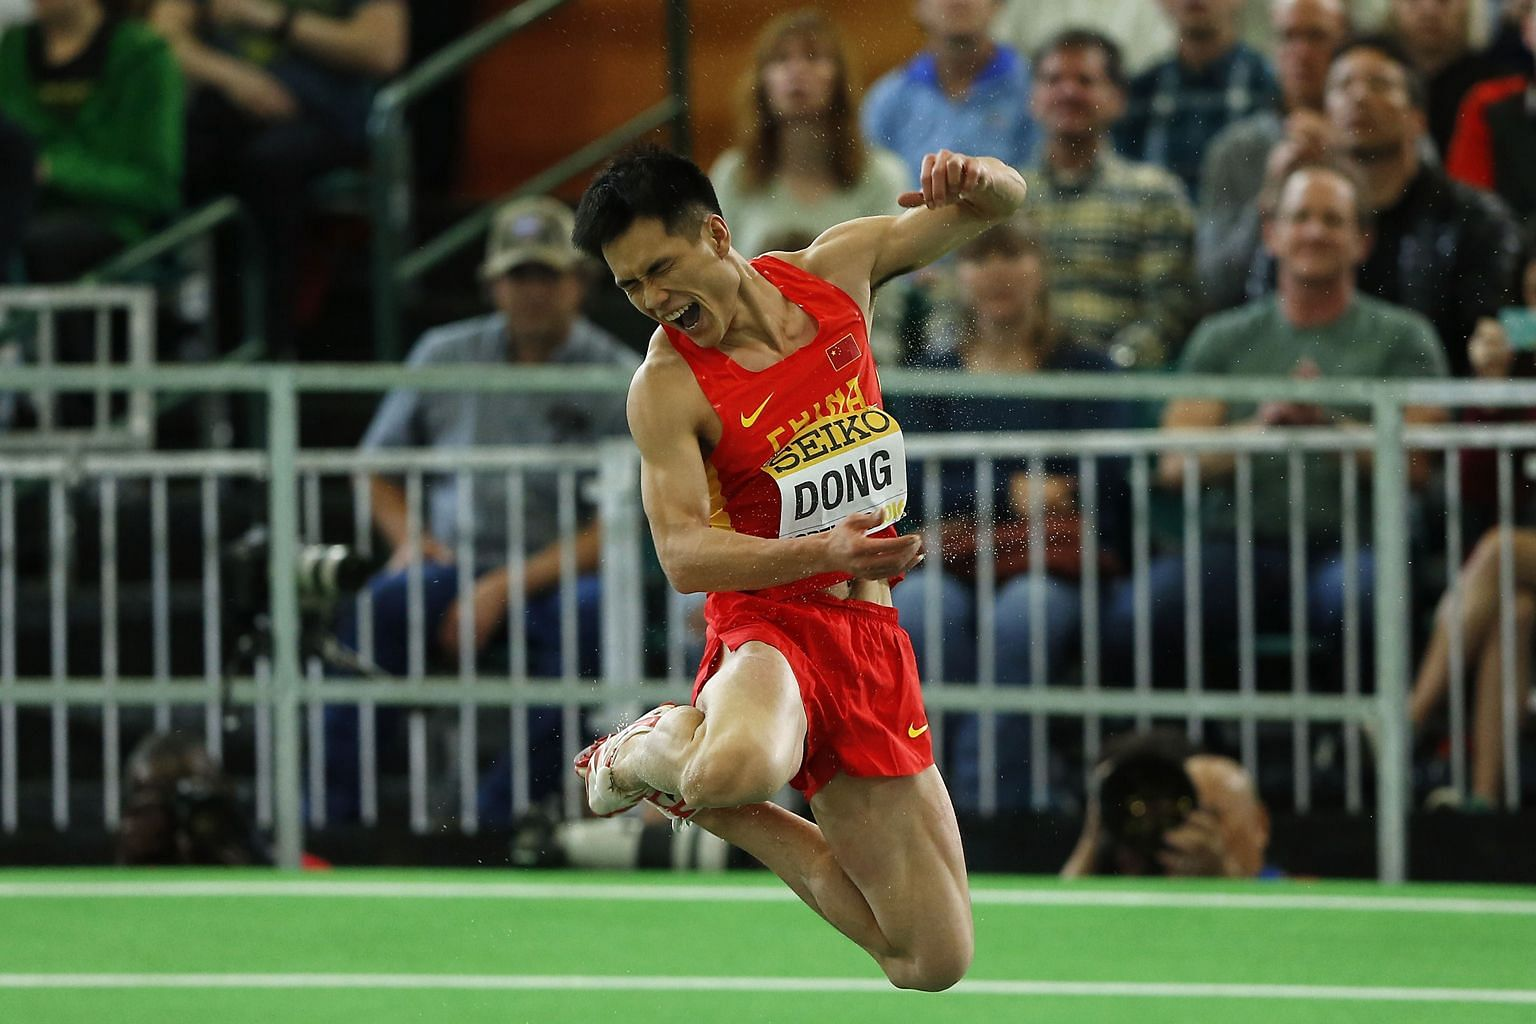 Dong Bin of China celebrates winning gold in the triple jump at the IAAF World Indoor Athletics Championships in Portland, Oregon on Saturday. He jumped 17.33m in the penultimate round to become only the third Chinese athlete to win a gold medal in t